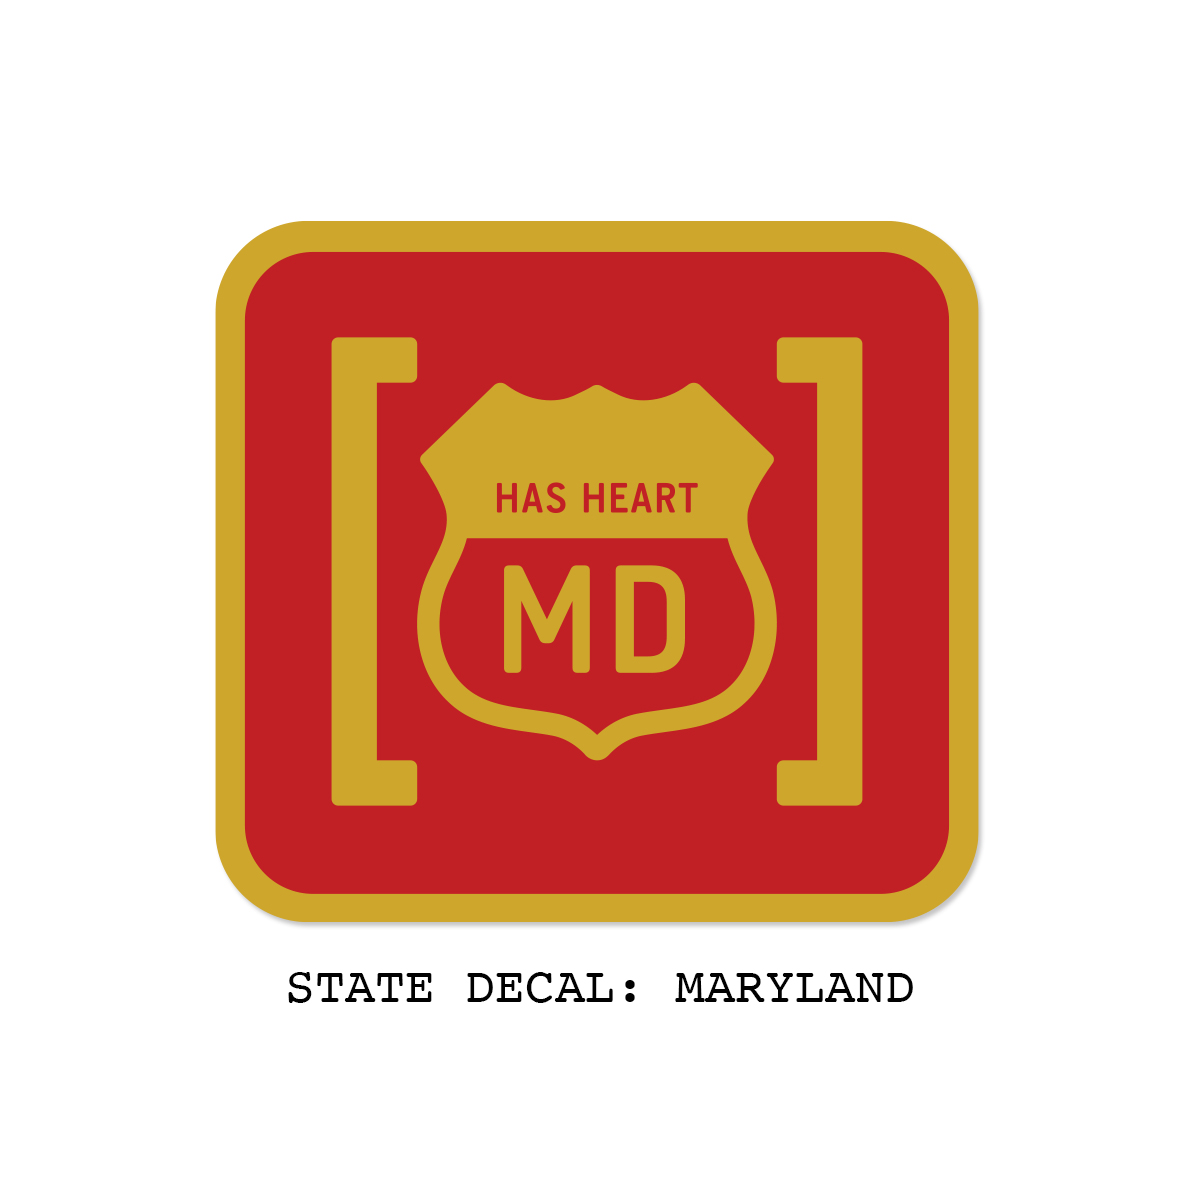 hasheart-statedecal-MD